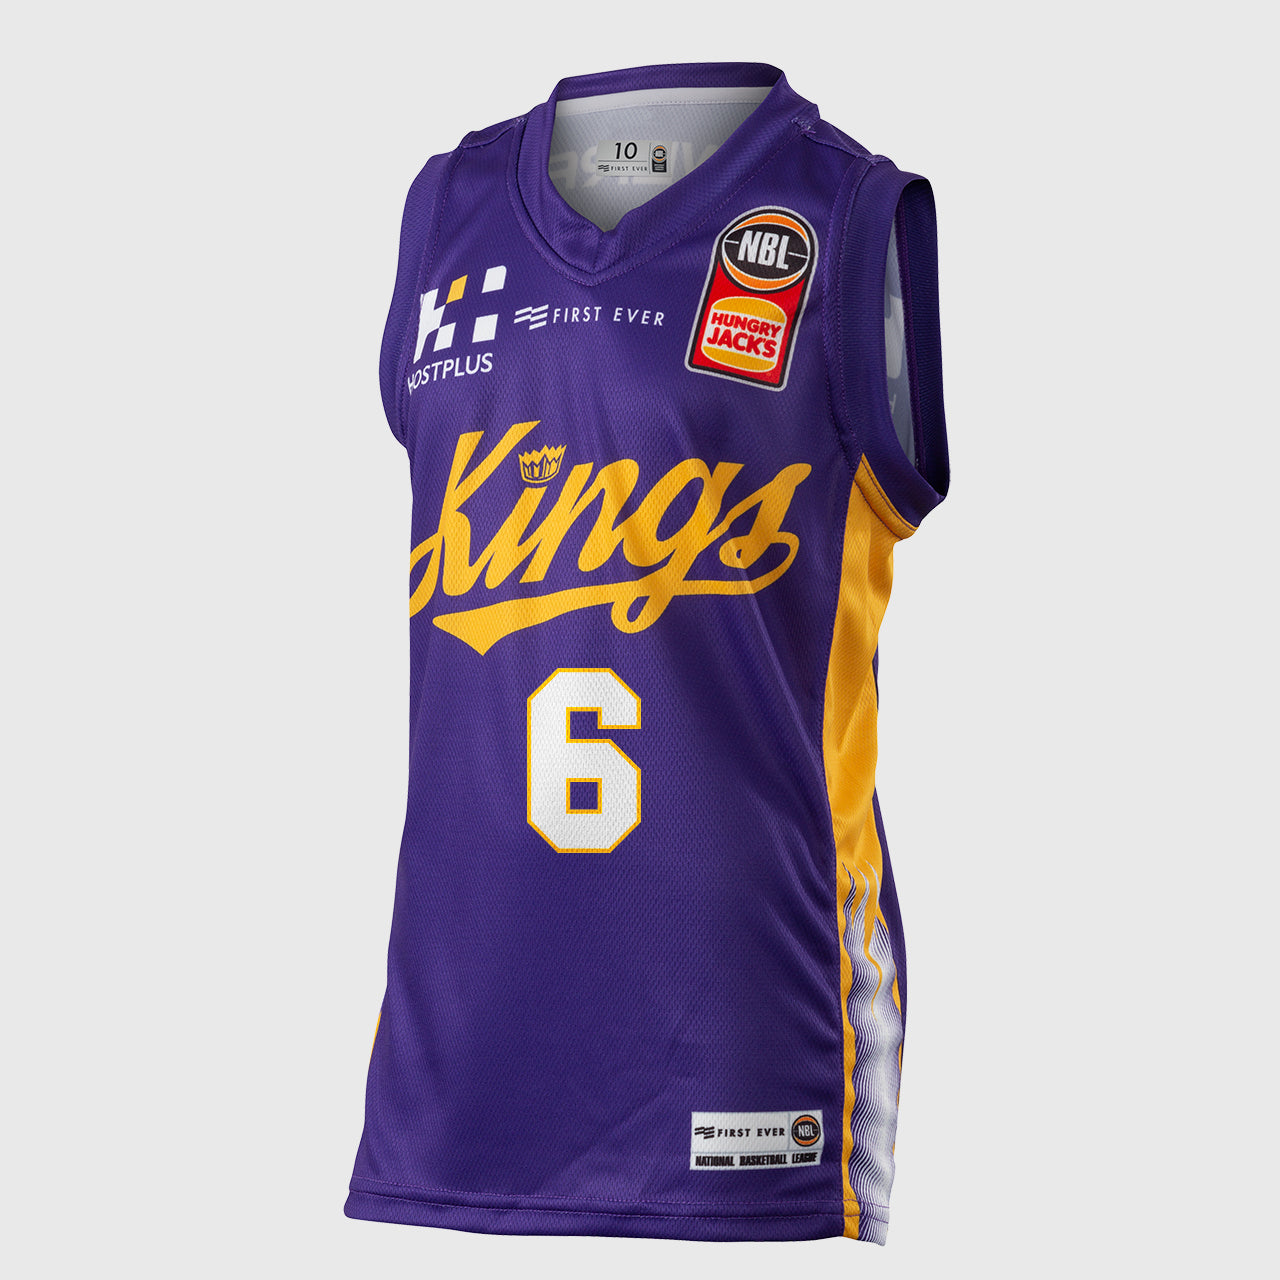 Sydney Kings 18/19 Youth Authentic Jersey - Andrew Bogut